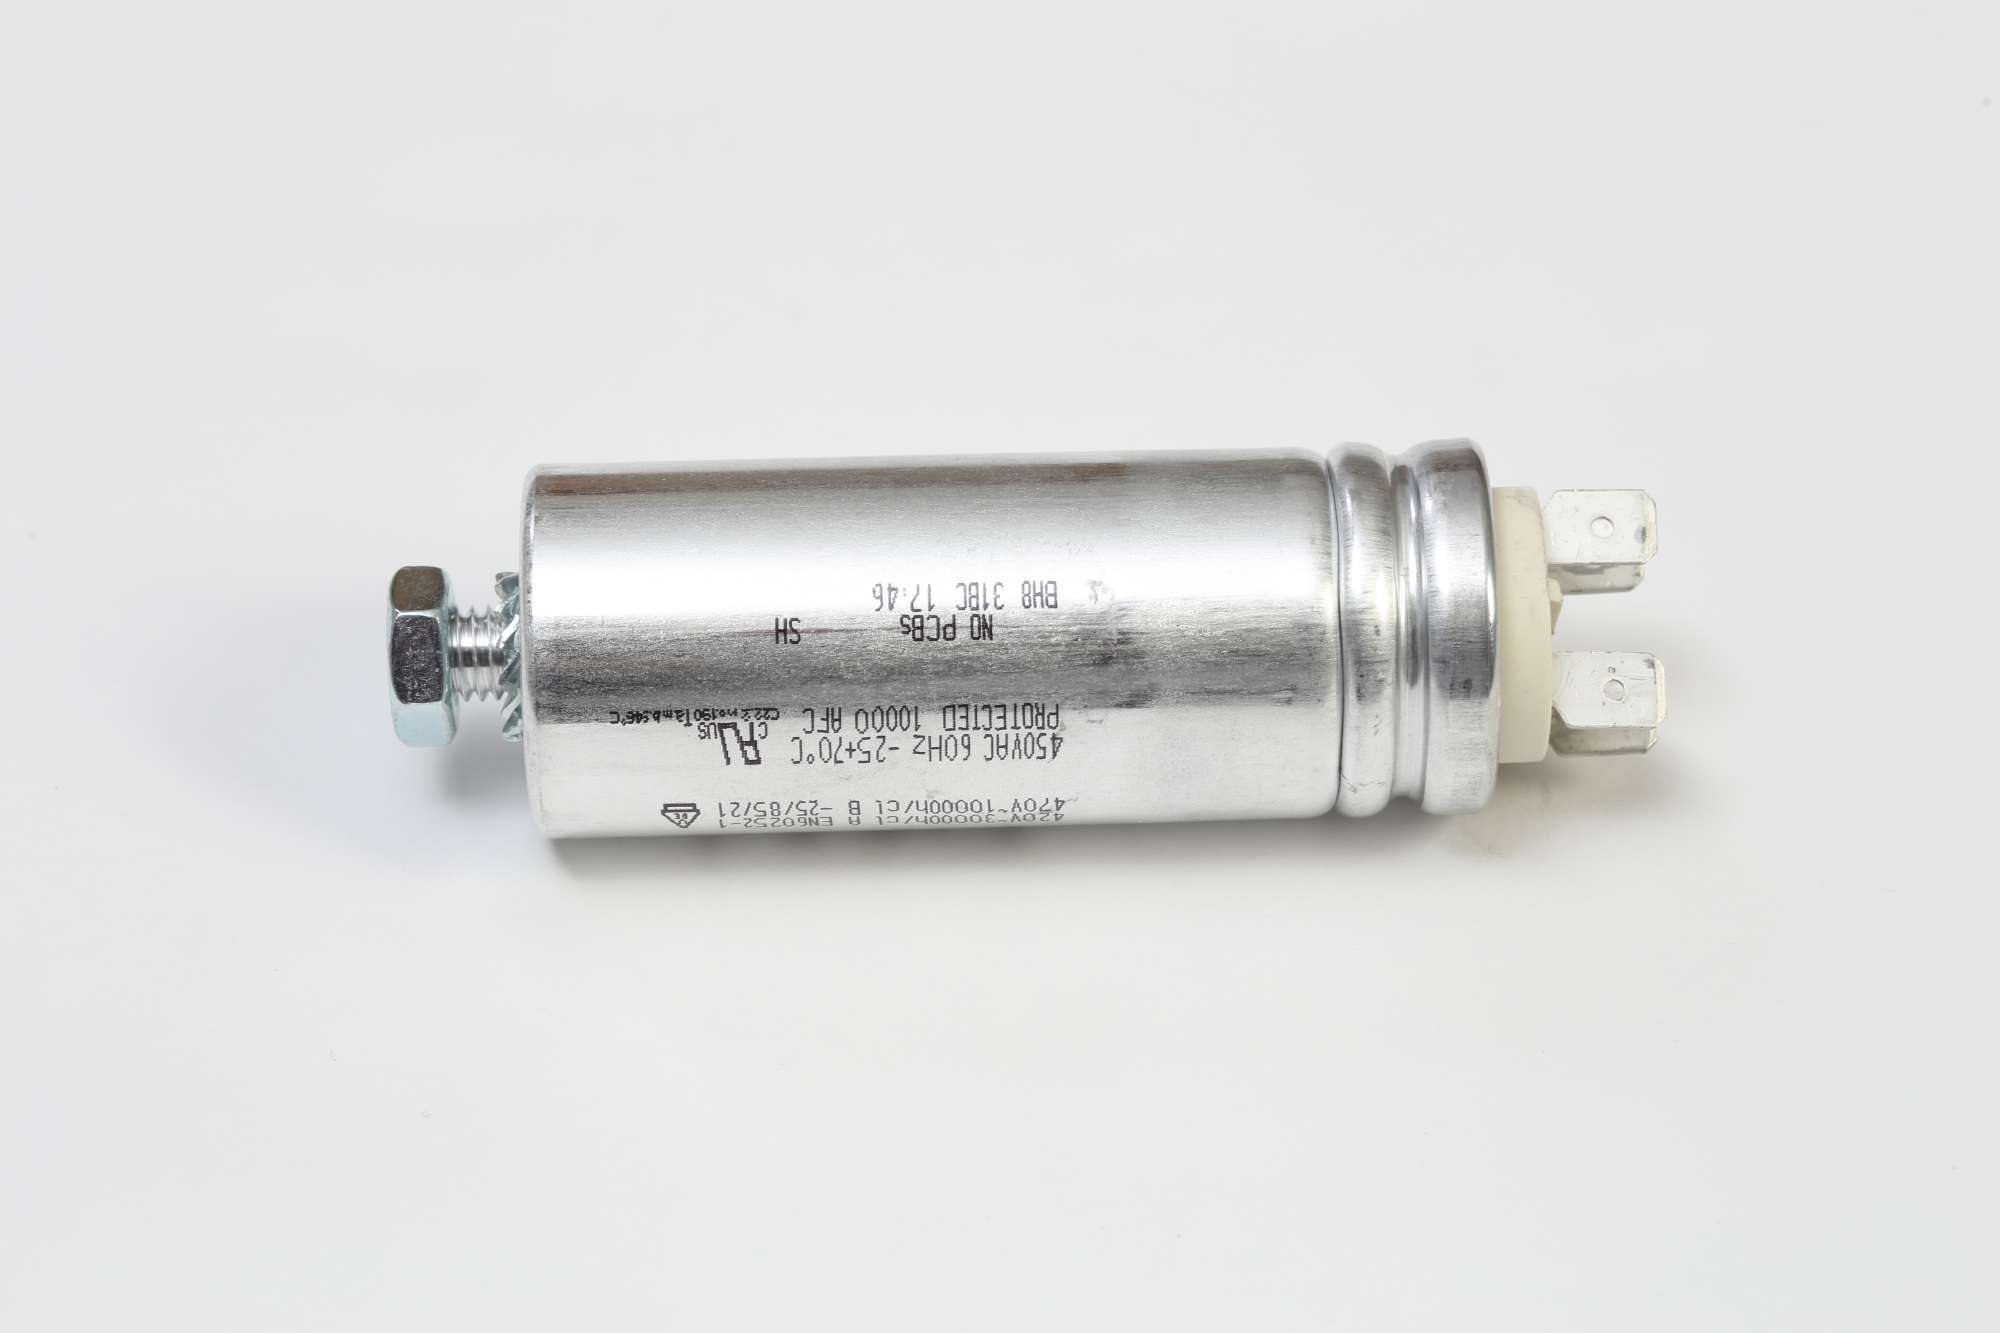 Image of 8µF, 600V, B215 capacitor for shunt trip